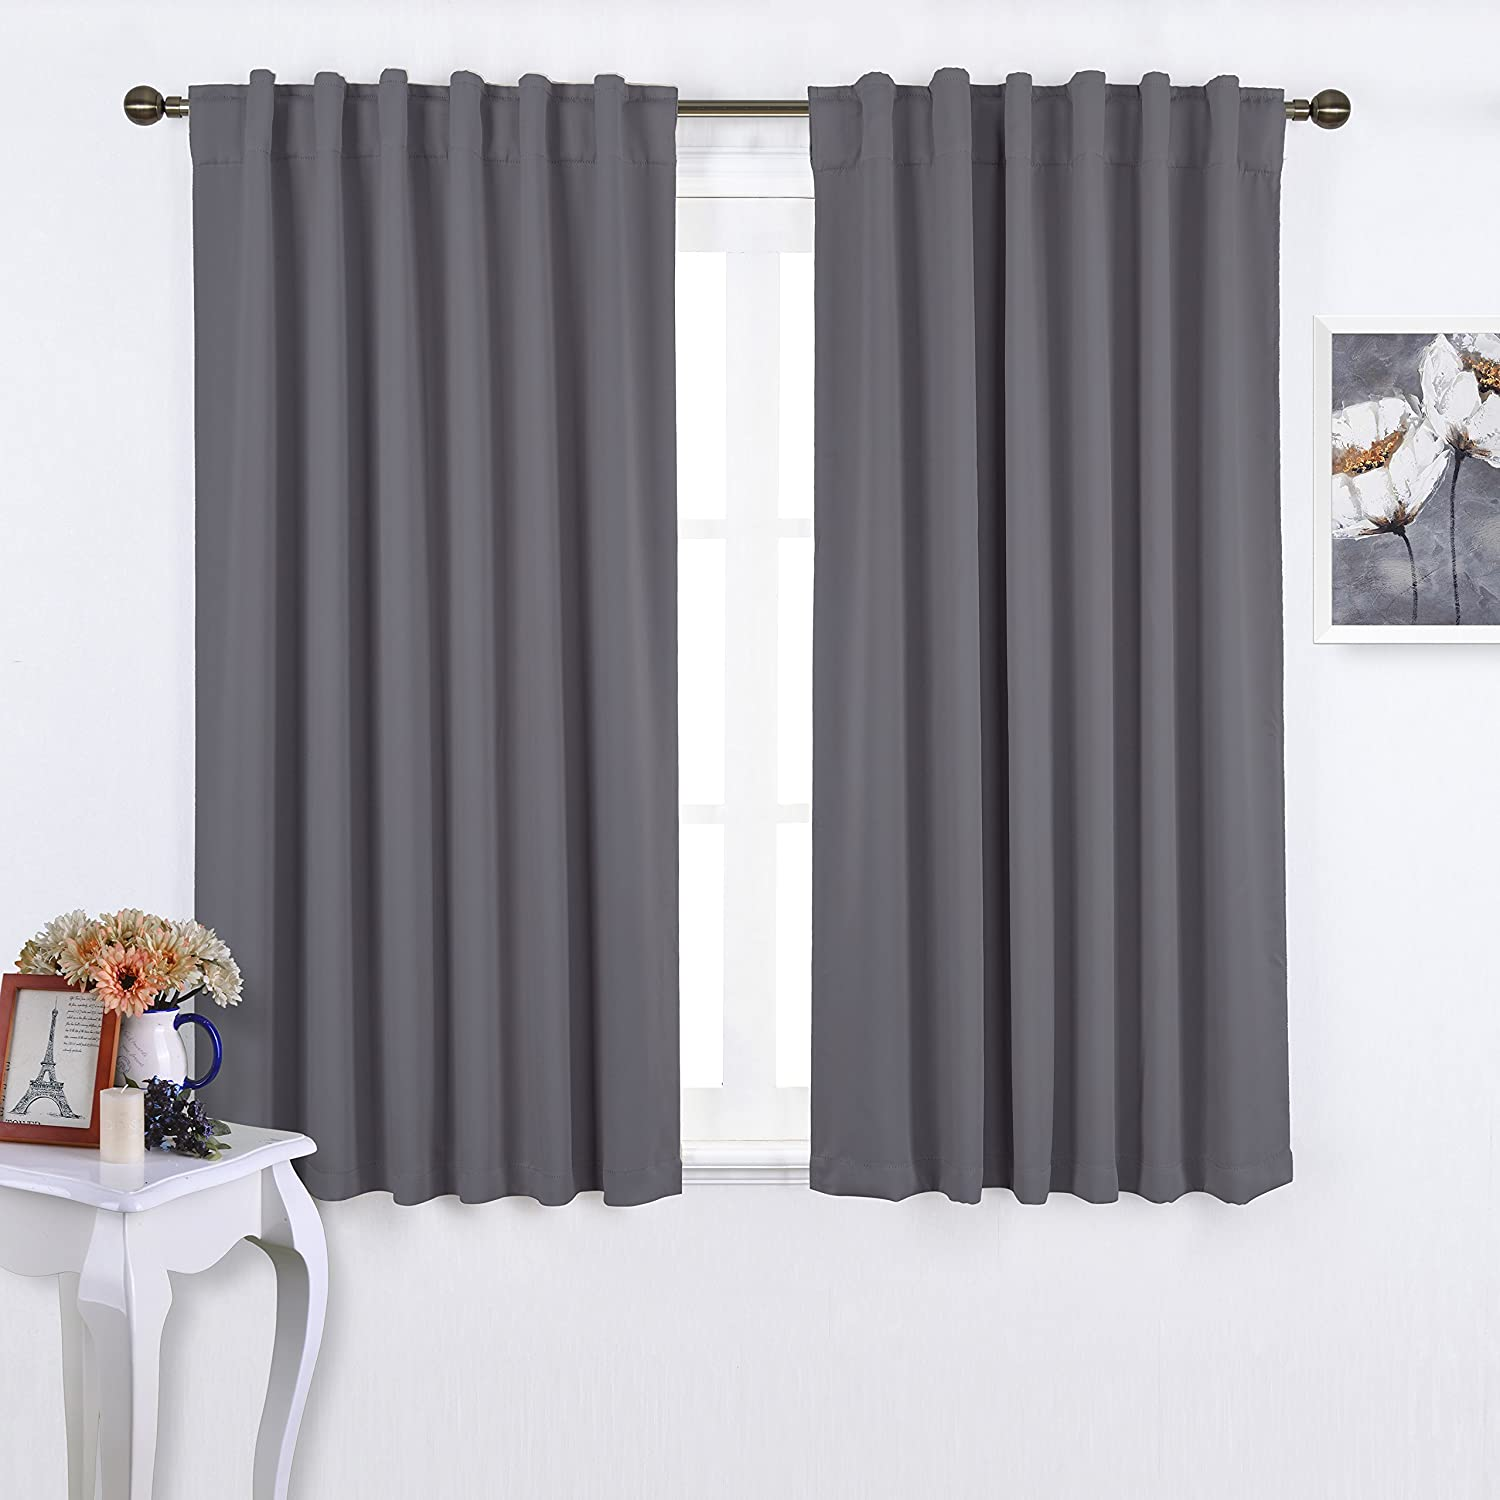 glass thermal slider kitchen wide inches rhf on put panel blinds you in door blackout sliding insulated i by of doors com curtain patio privacy front curtains top curtaini can finebeautiful grey amazon